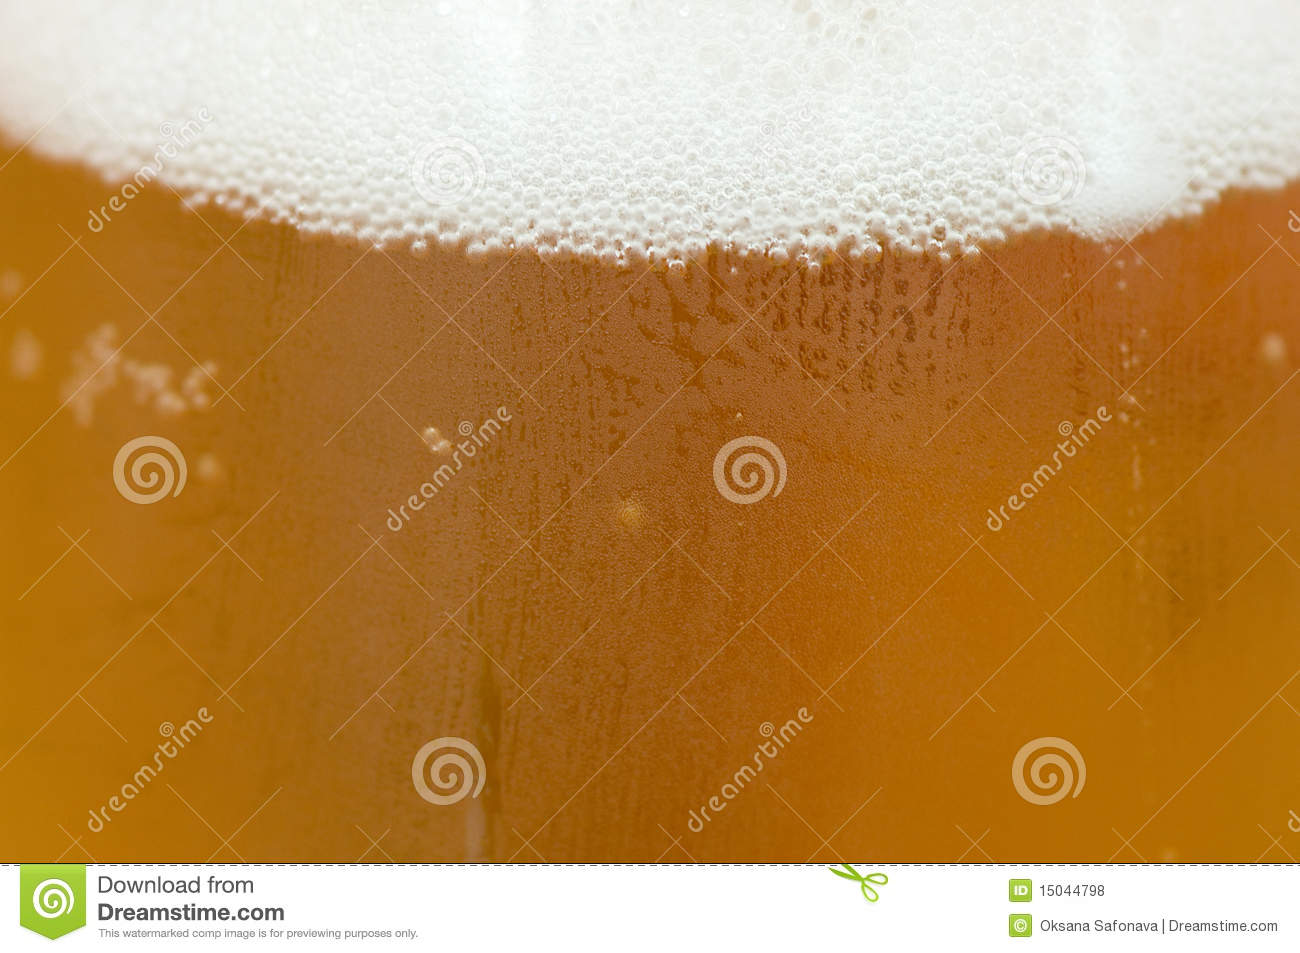 condensation on a glass of beer royalty free stock photos. Black Bedroom Furniture Sets. Home Design Ideas